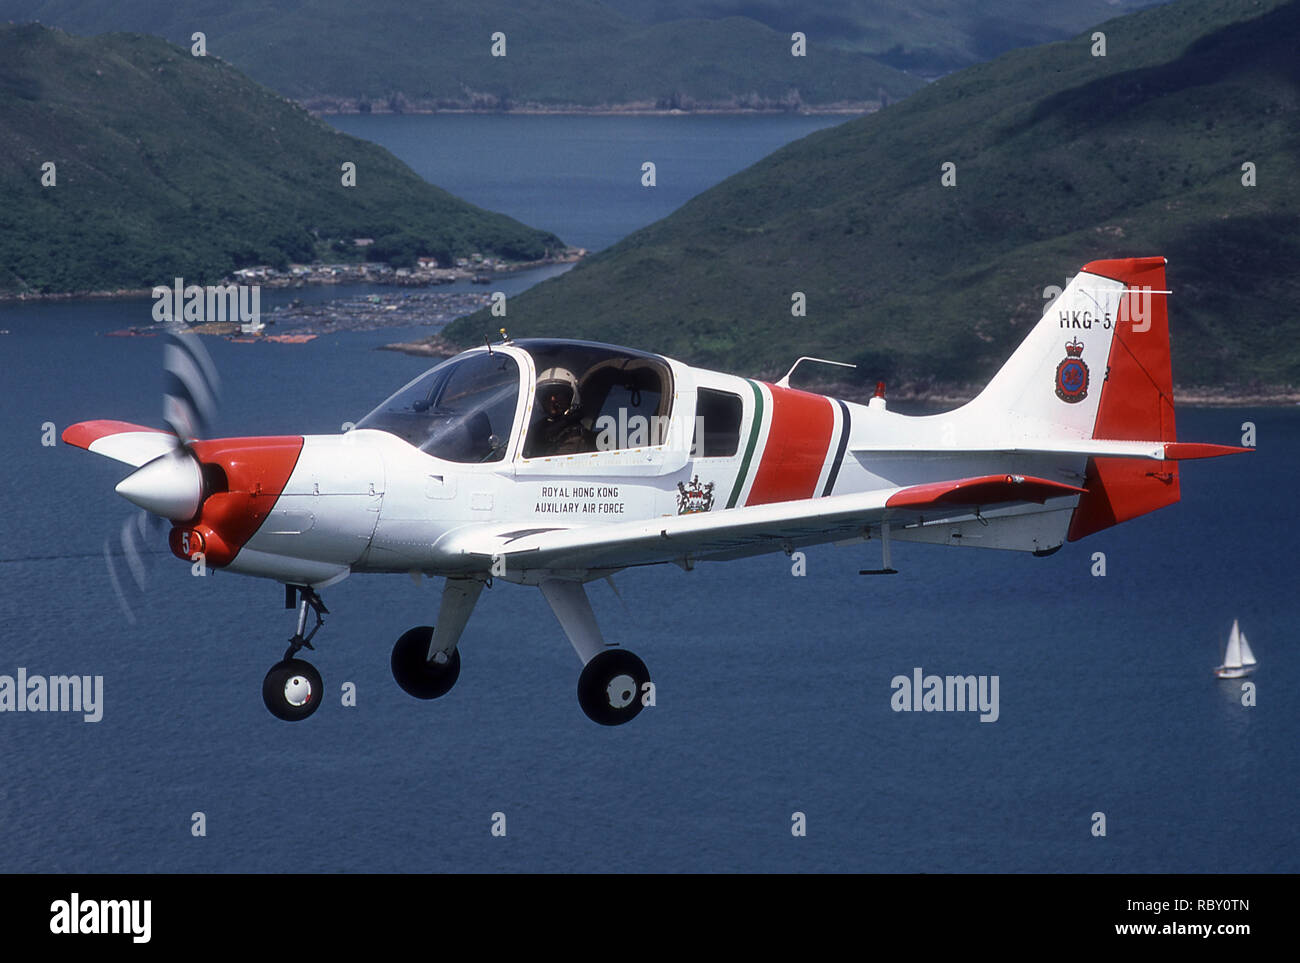 Two Bladed Propeller Stock Photos & Two Bladed Propeller Stock